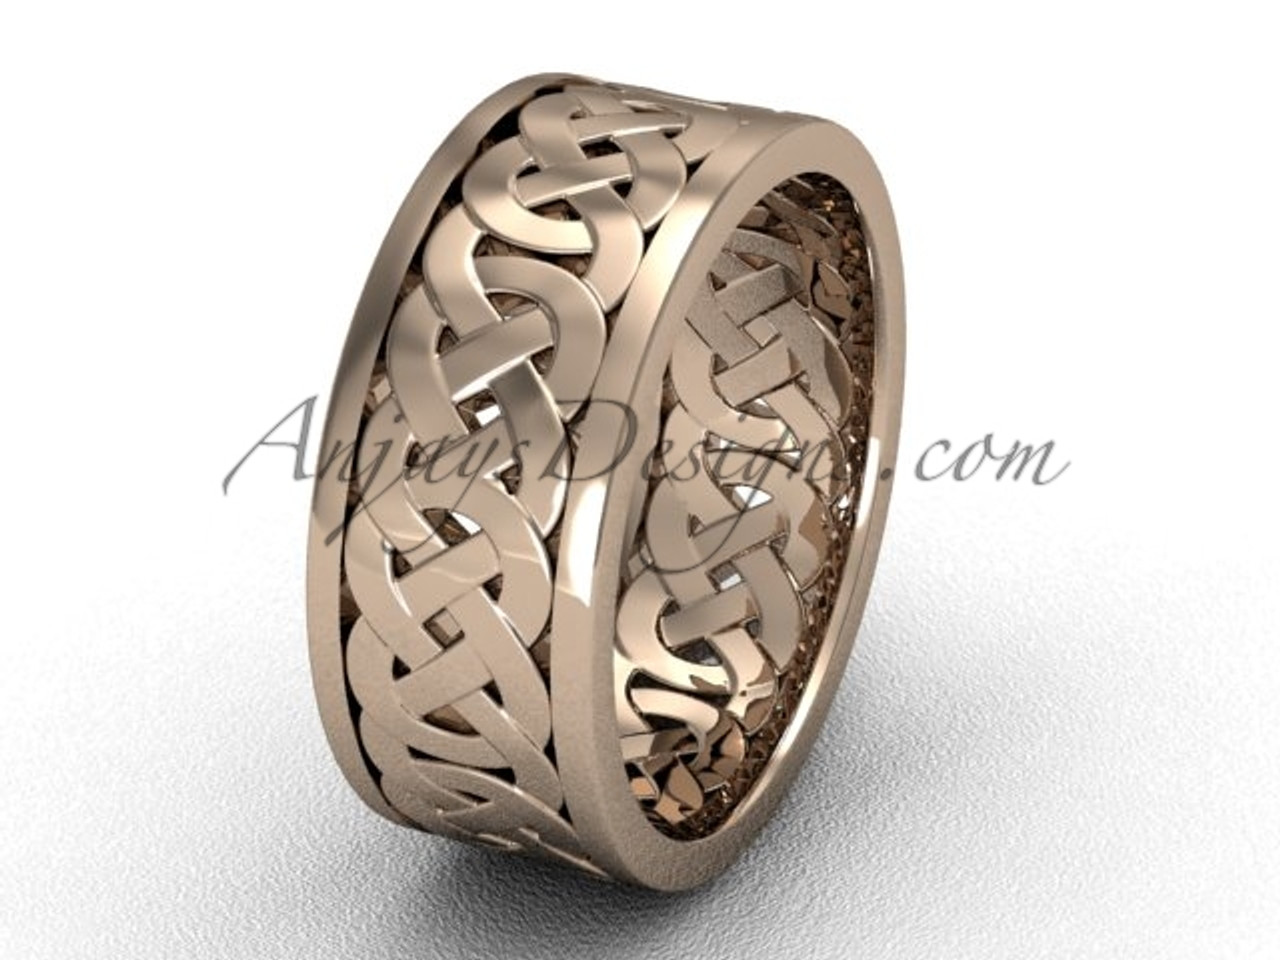 This is a photo of Unique Simple Celtic 43.43 mm Wedding Bands - 43k Rose Gold Band Proposal Ring CT43431G